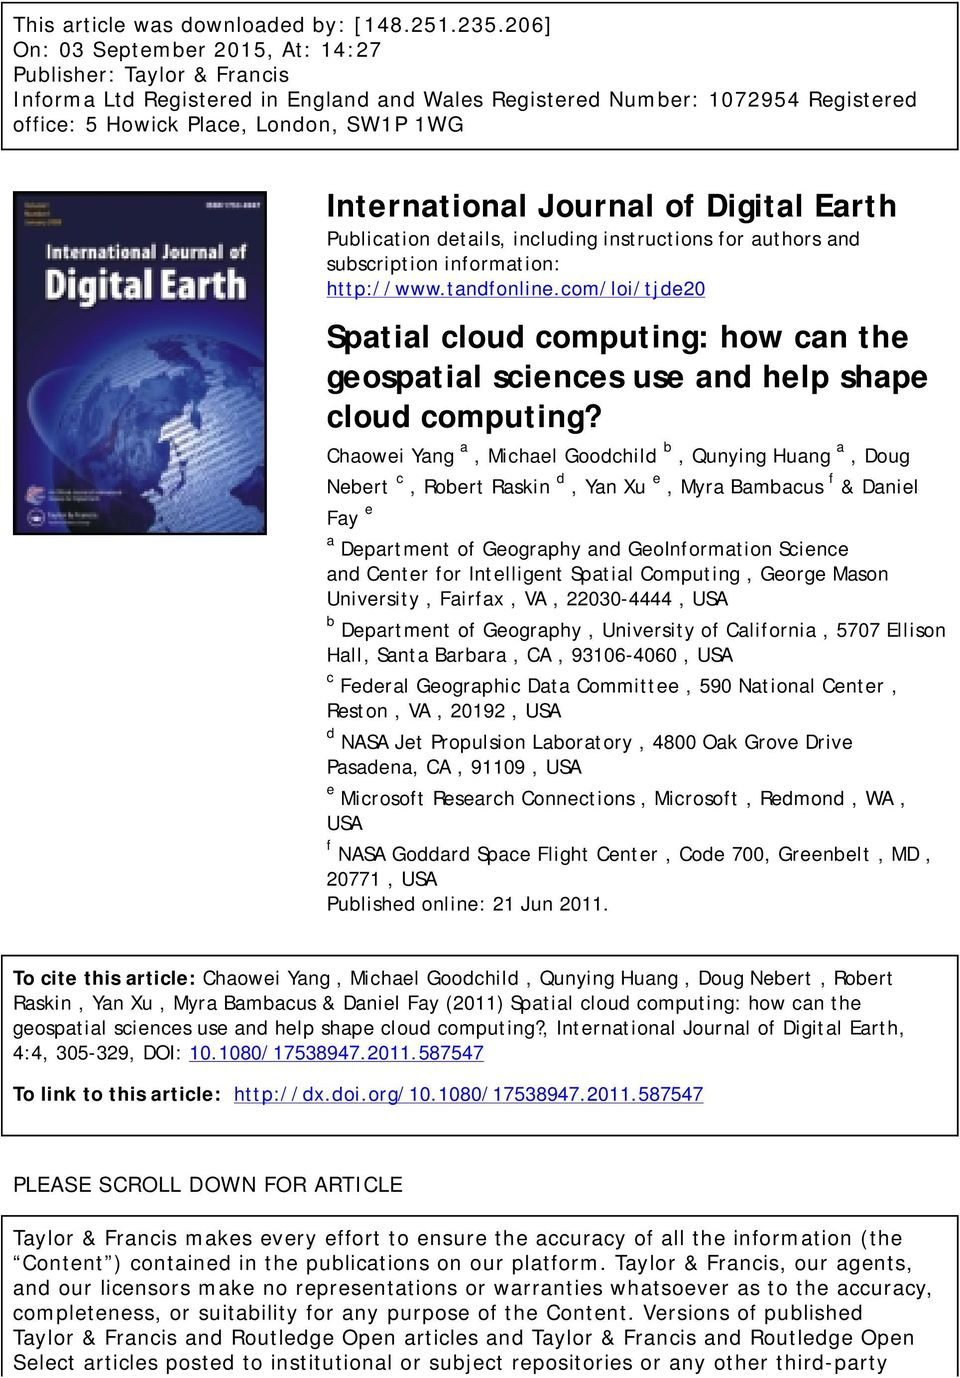 International Journal of Digital Earth Publication details, including instructions for authors and subscription information: http://www.tandfonline.